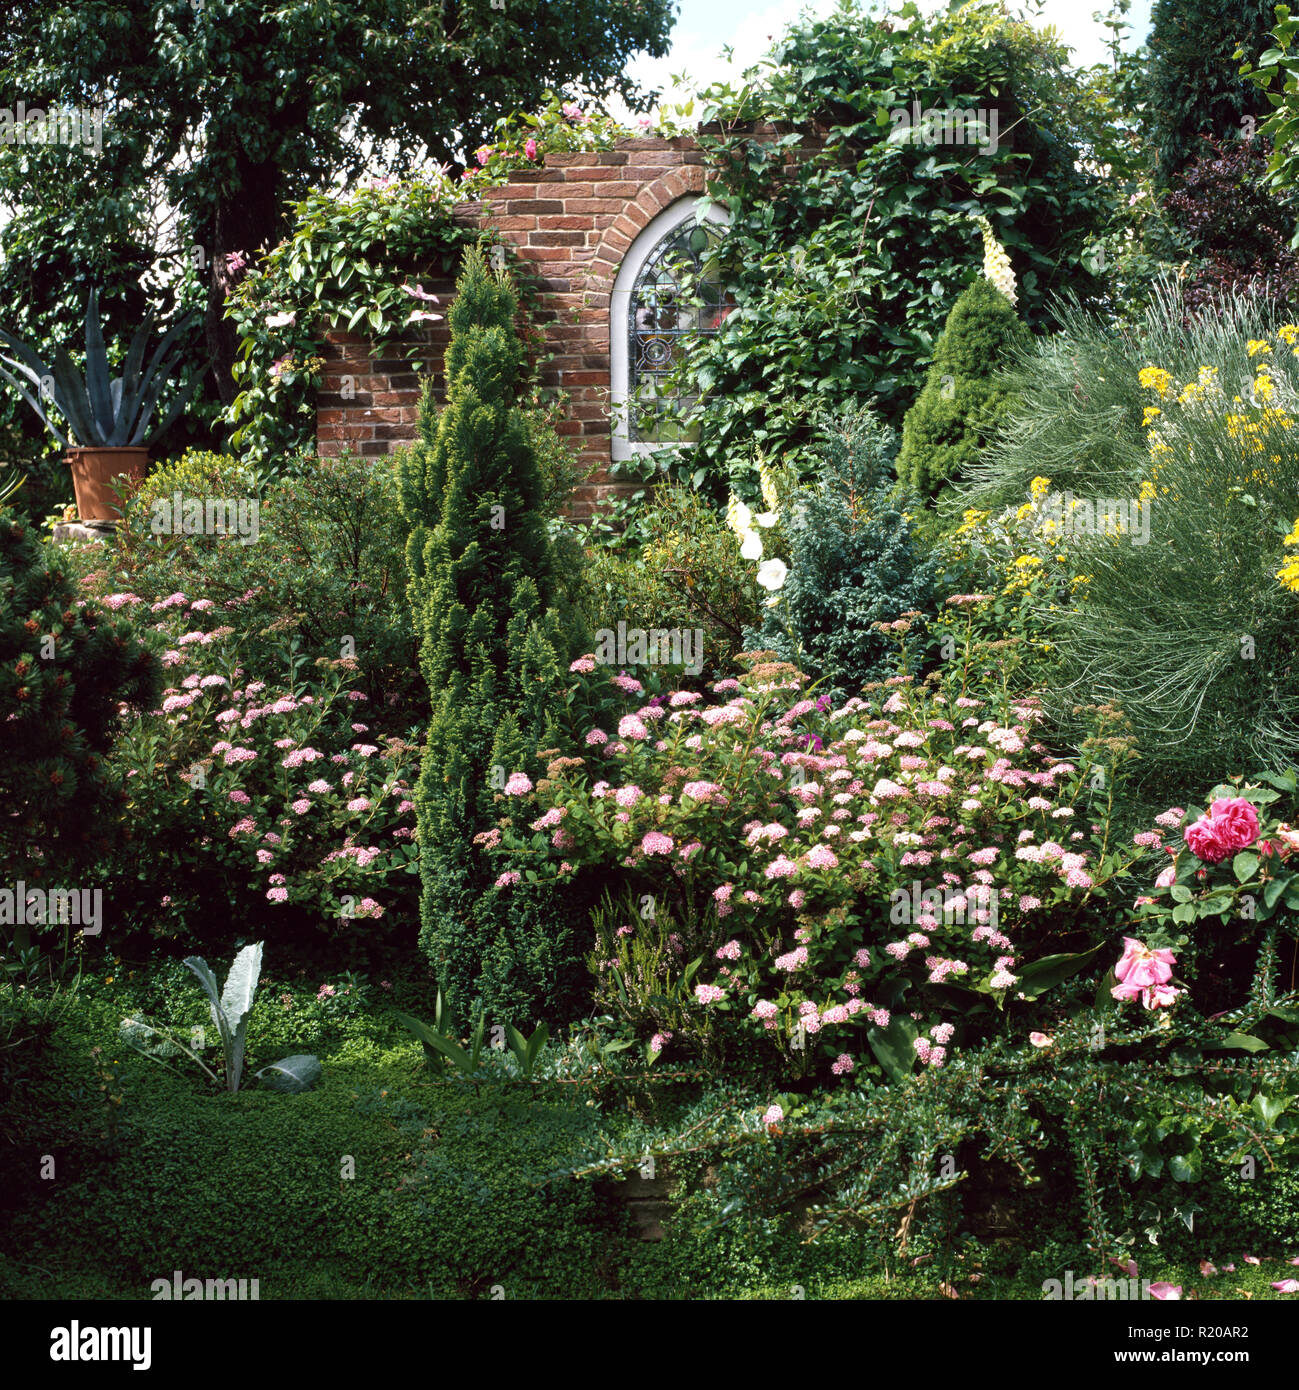 Fastigiate yew and pink roses in well stocked garden - Stock Image